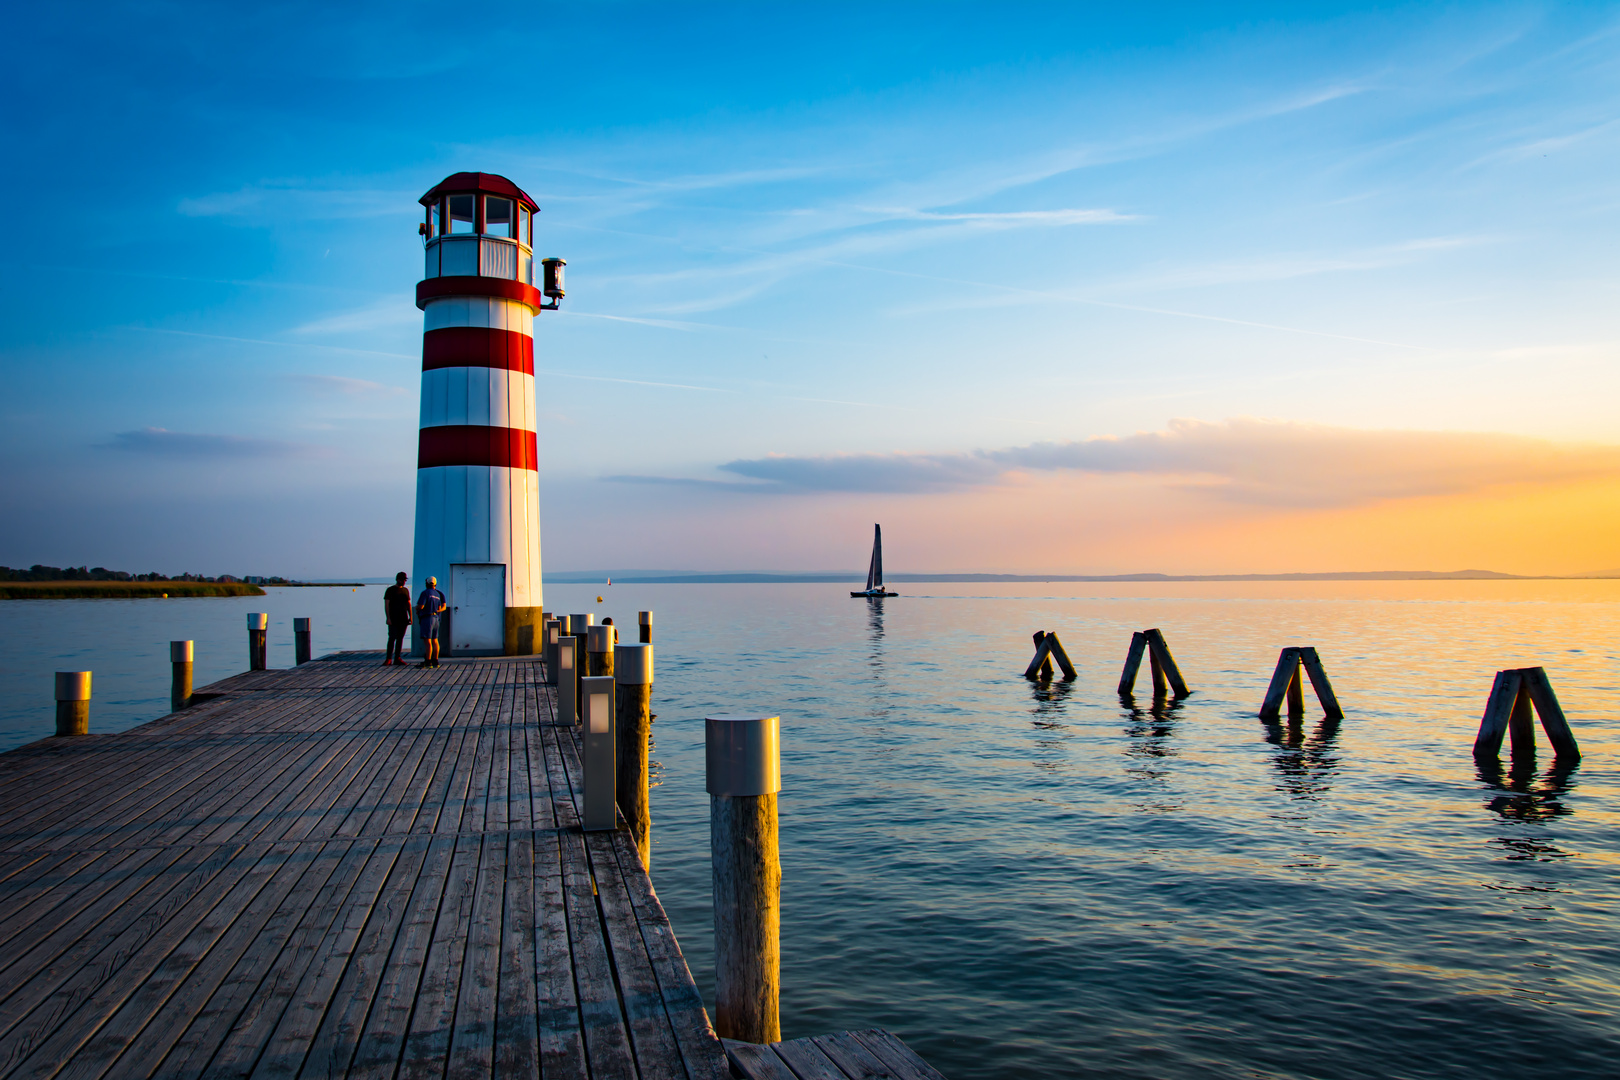 sonnenuntergang leuchtturm podersdorf foto bild world leuchtturm sterreich bilder auf. Black Bedroom Furniture Sets. Home Design Ideas